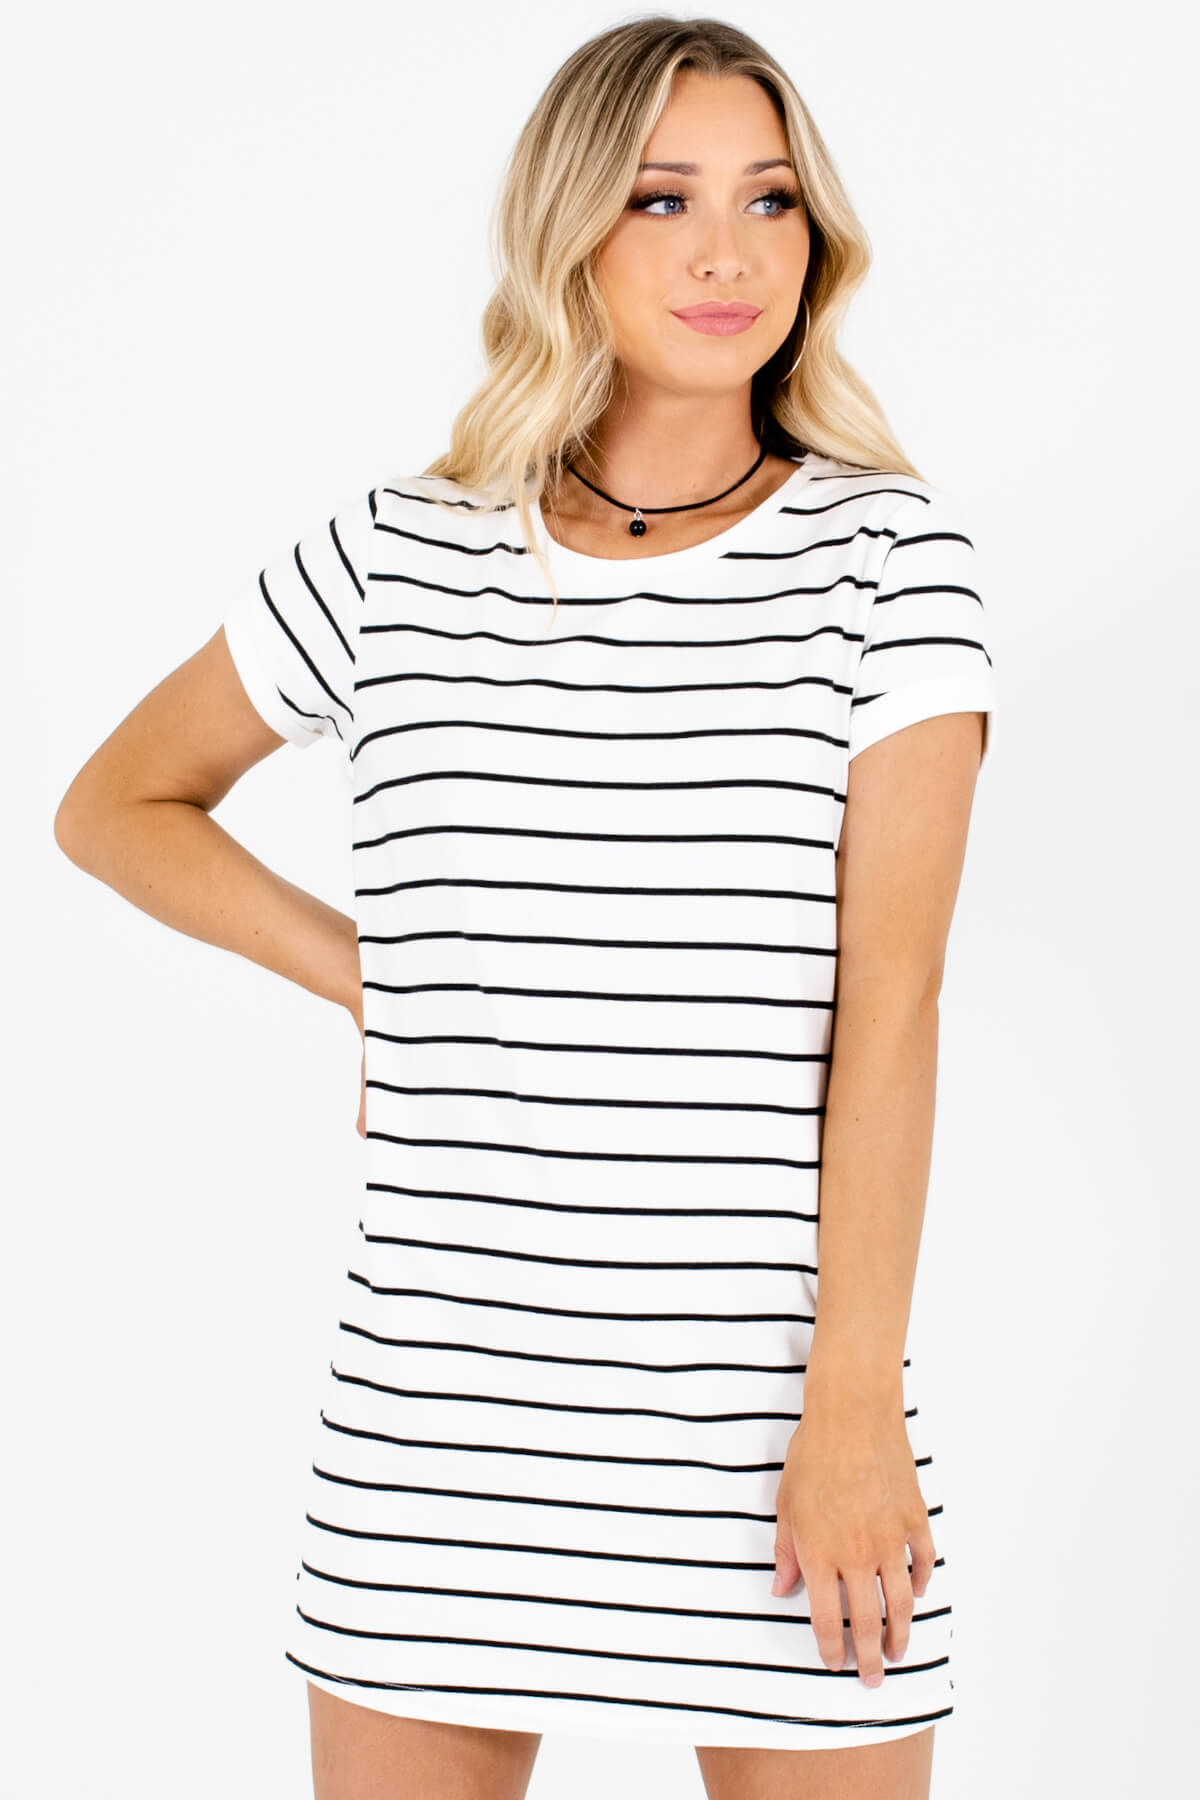 White Black Striped Long T-Shirt Tunic Mini Dresses for Women